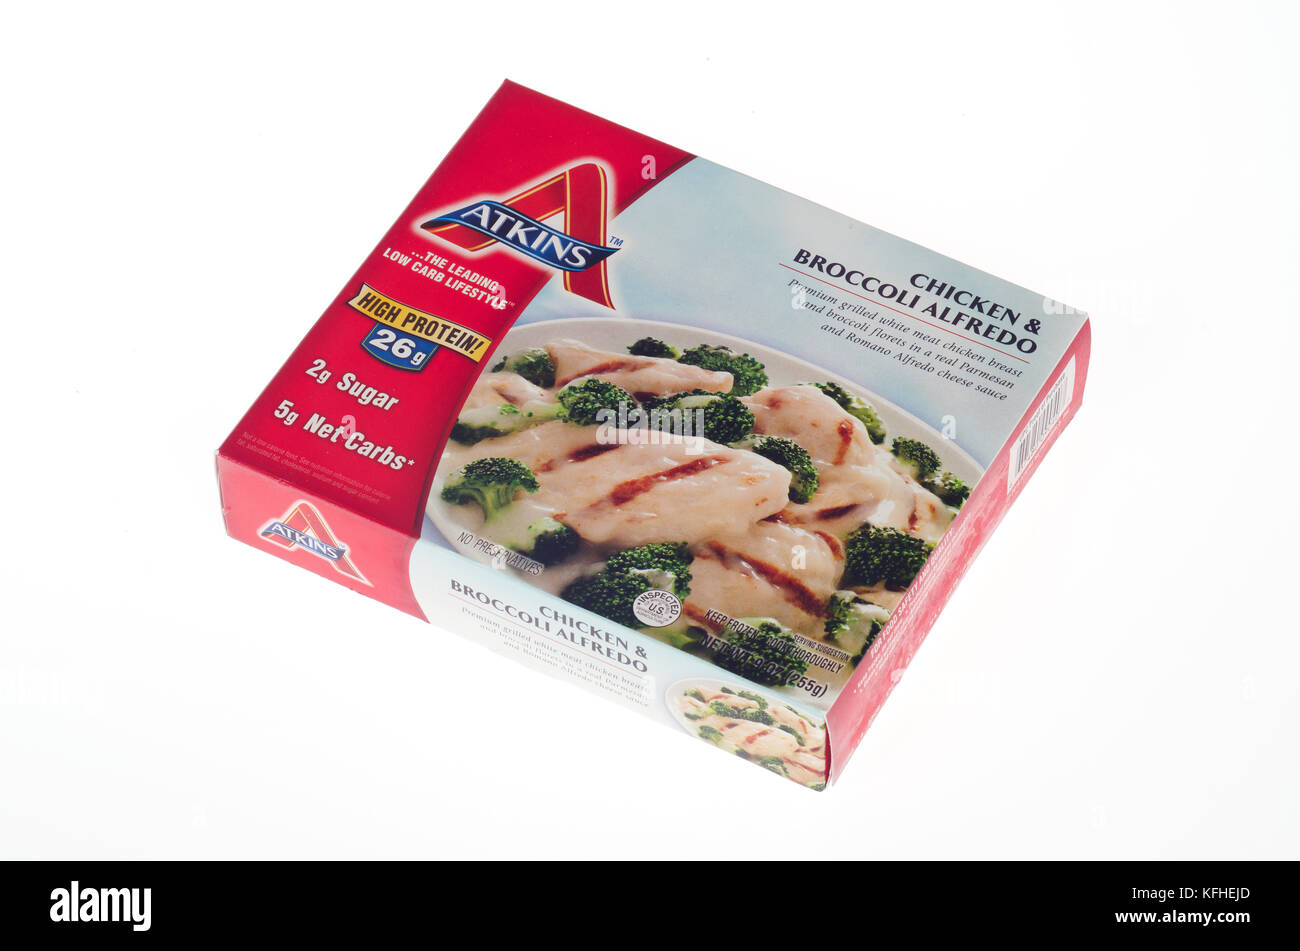 Atkins Diet Chicken & Broccoli Alfredo frozen tv dinner on white background - Stock Image